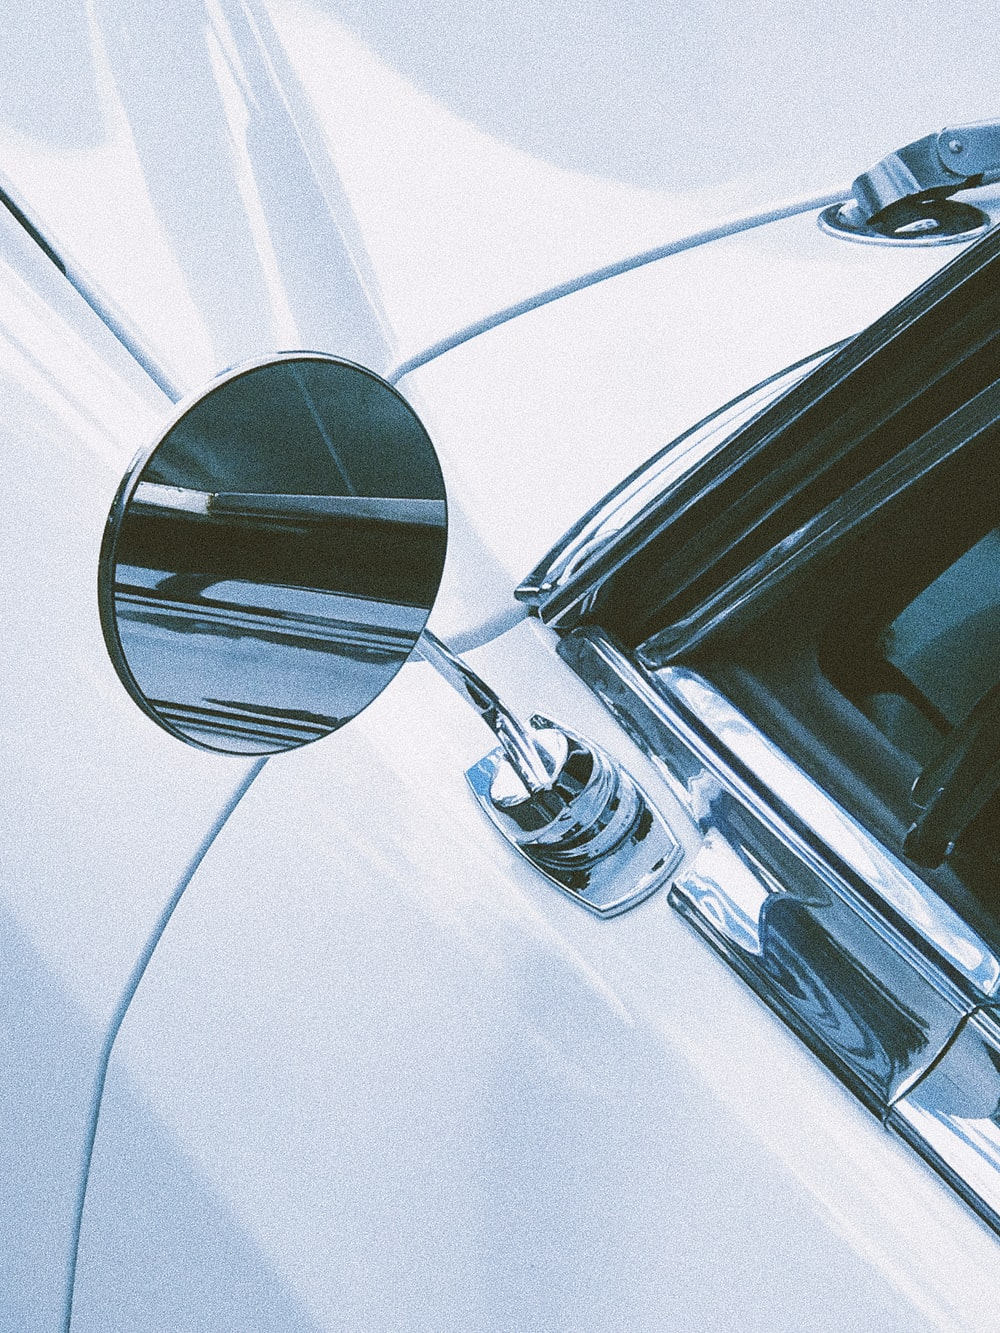 view of vehicle side mirror